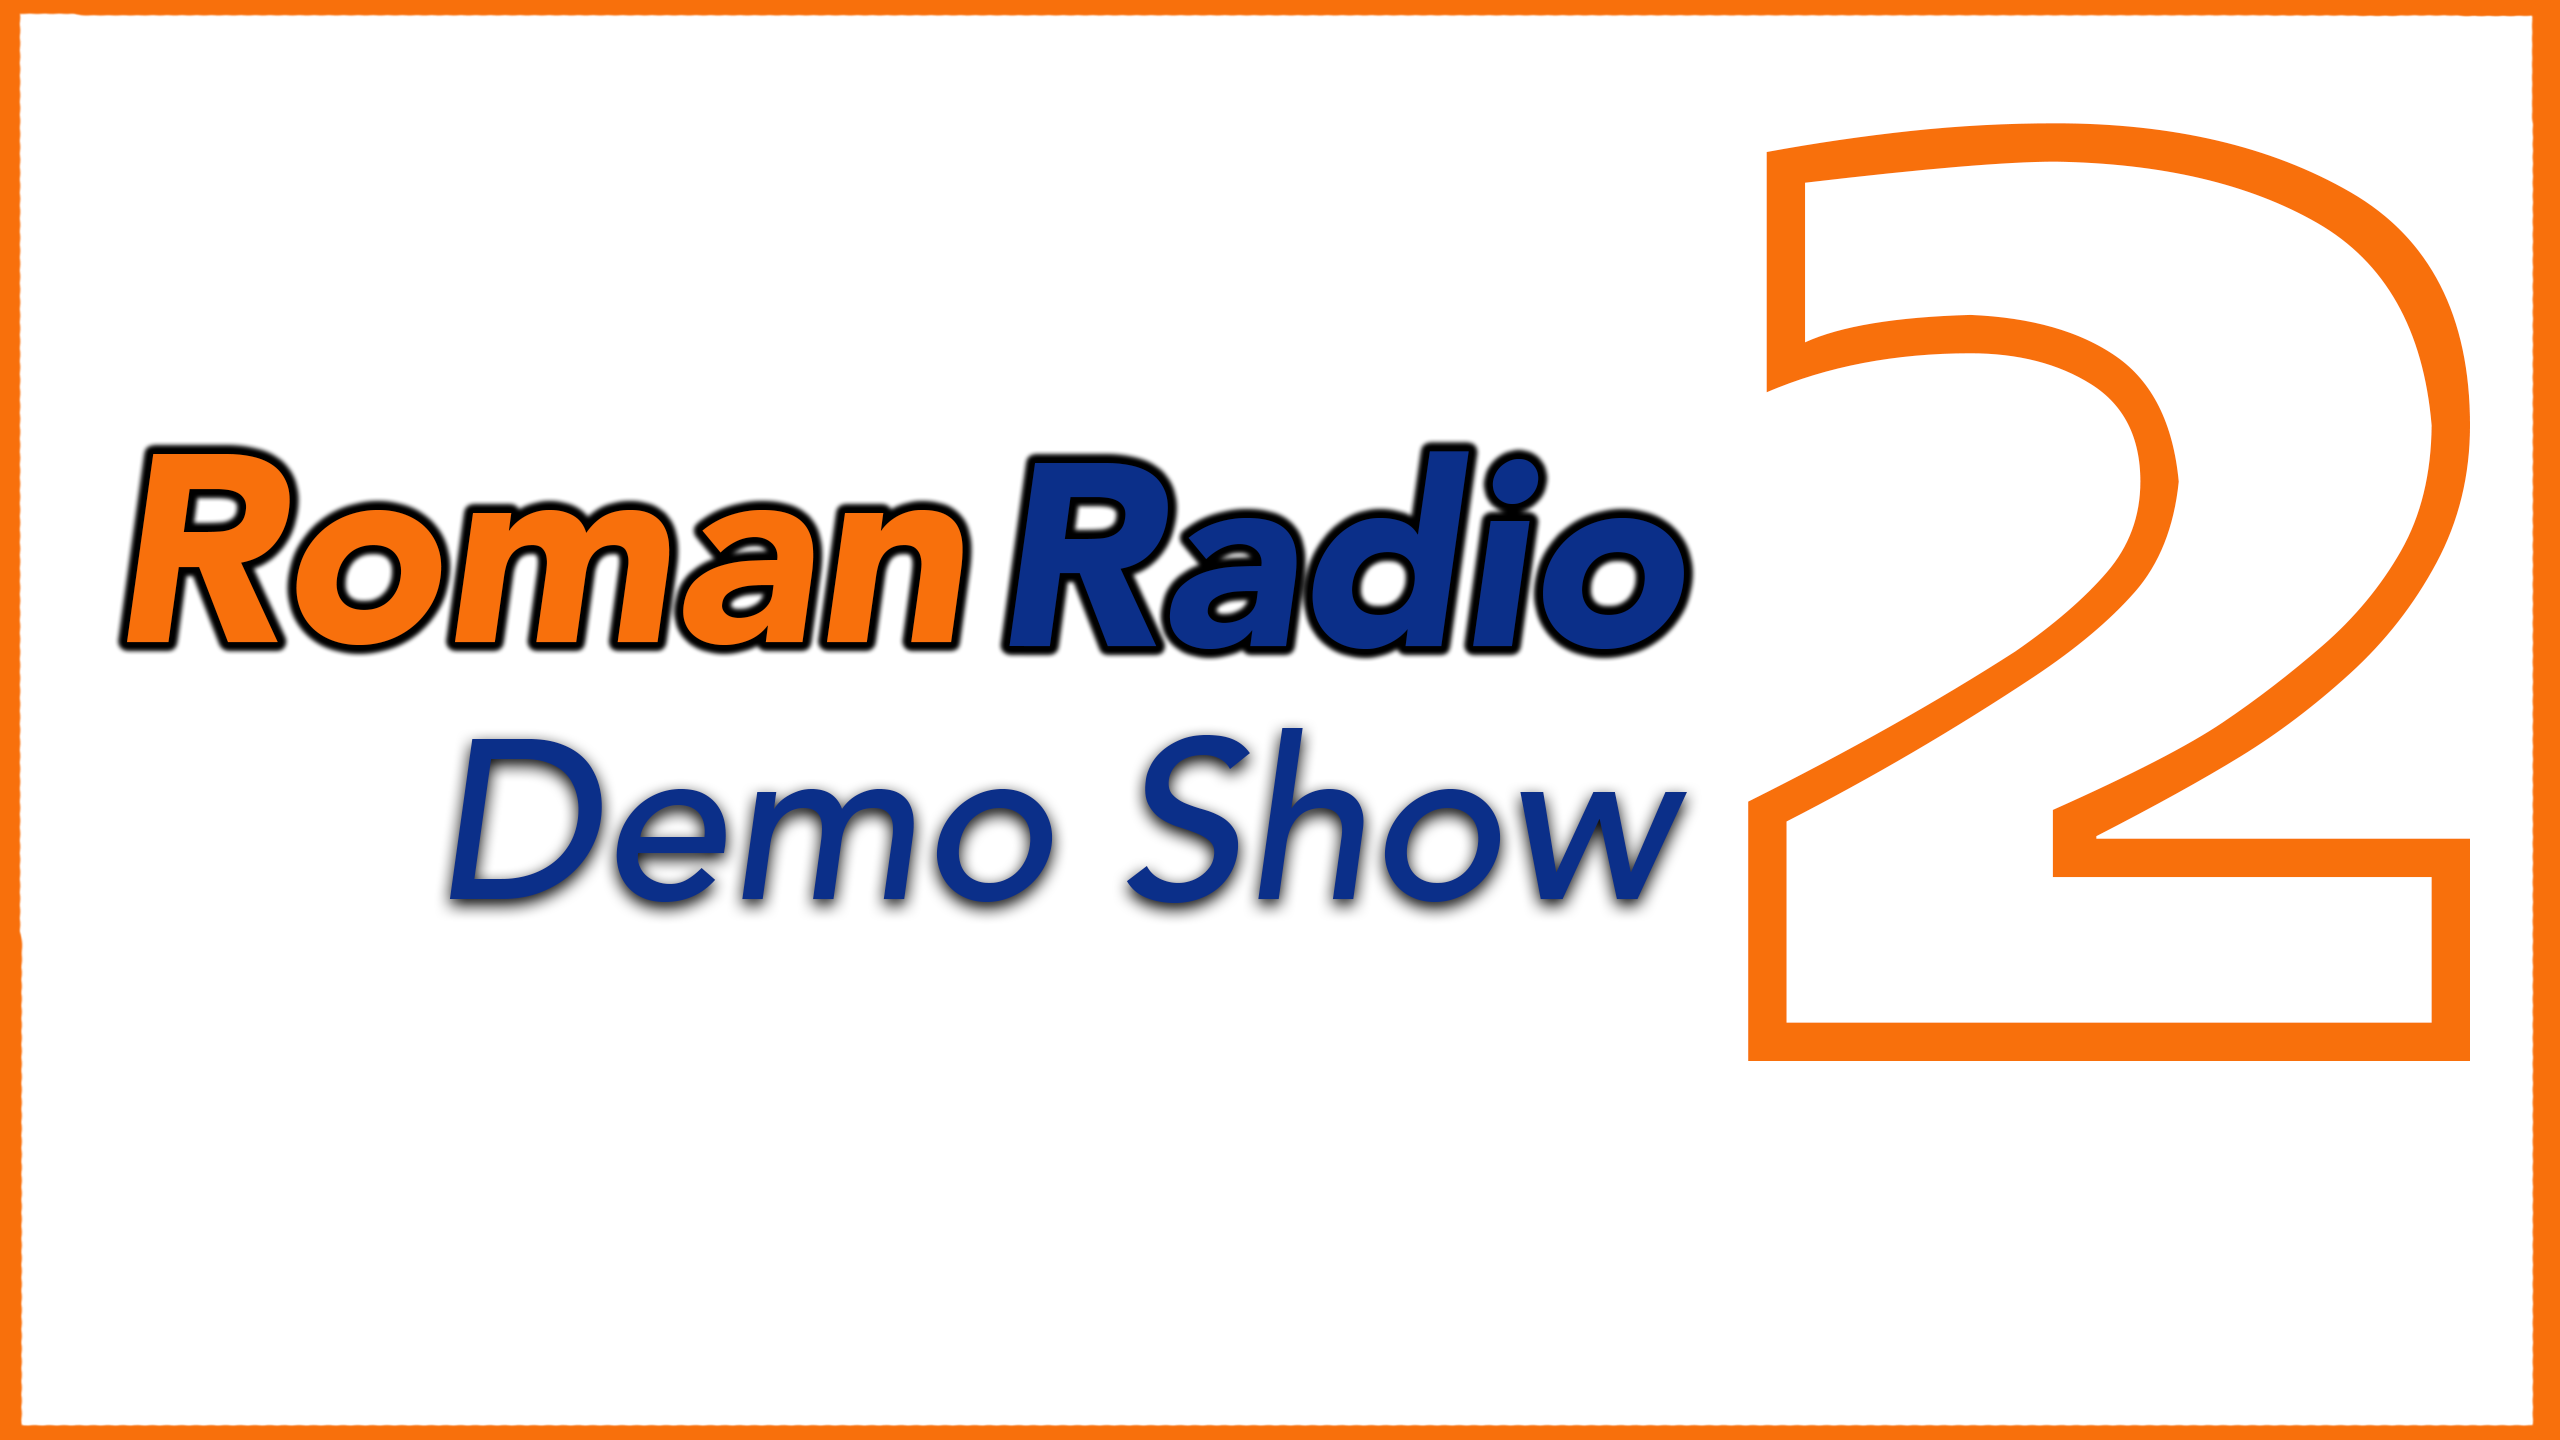 Roman Radio Demo Post 2